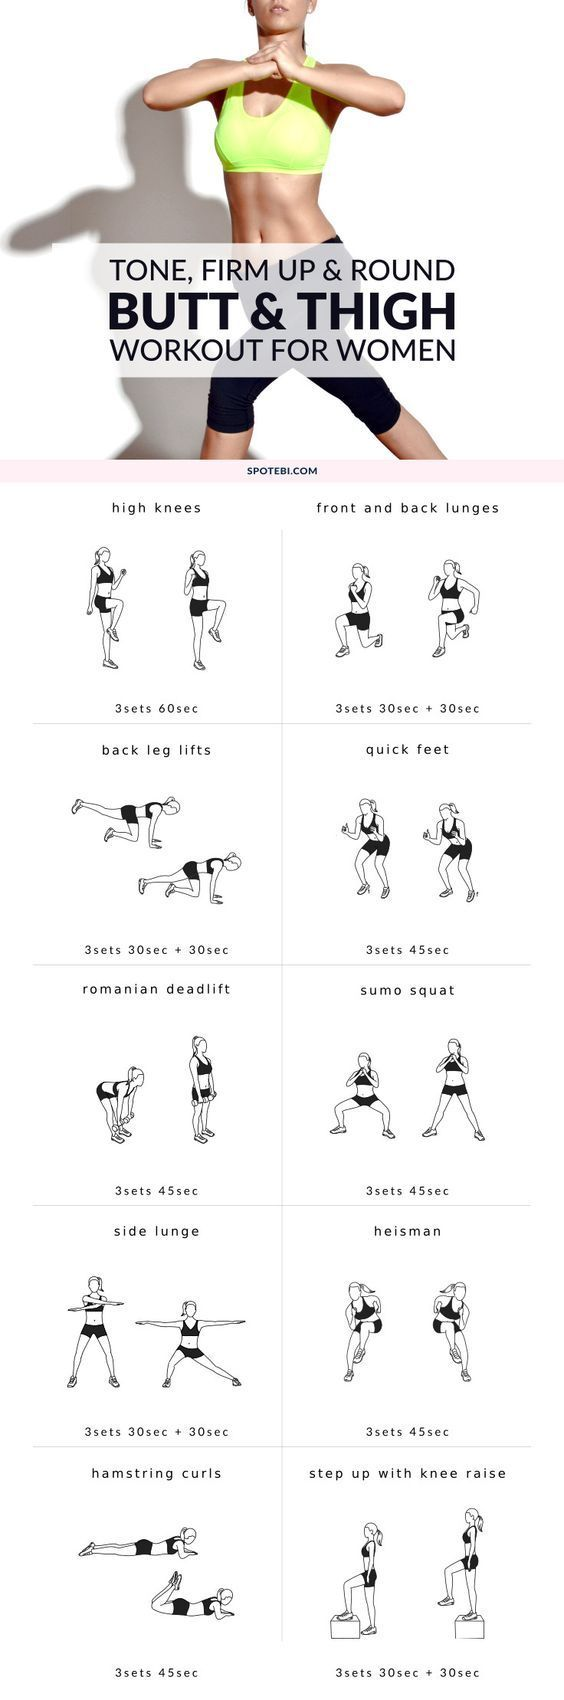 Butt and thigh workout. #fitness